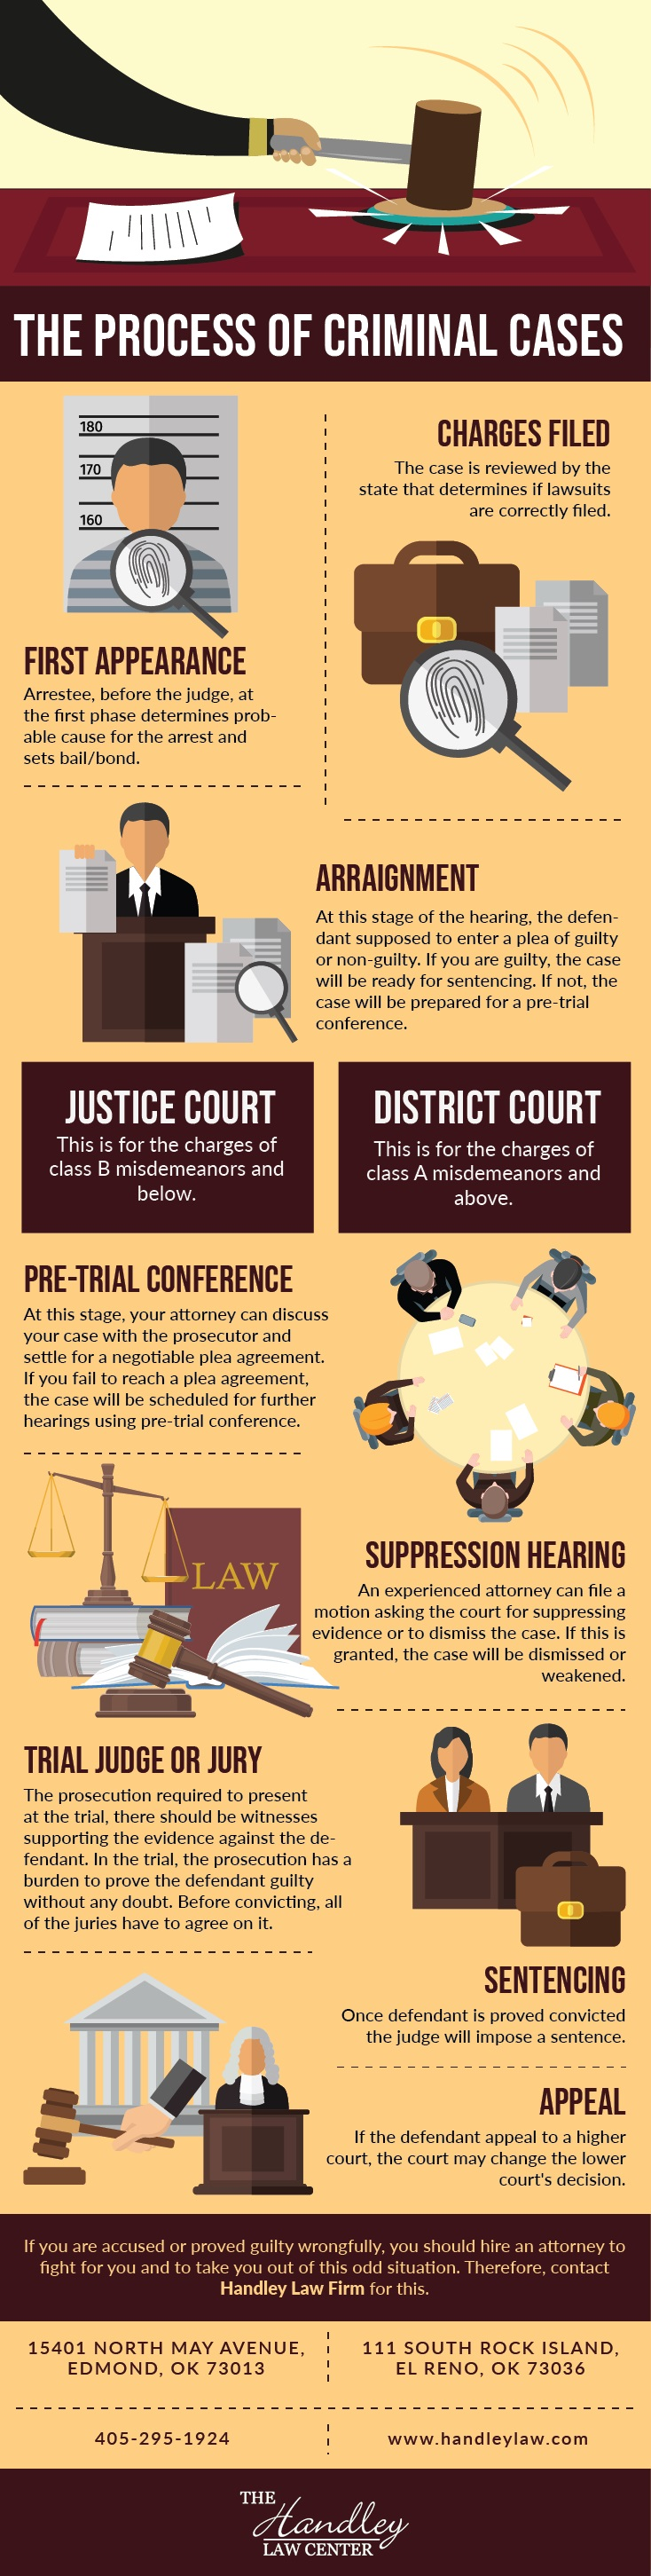 The Process Of Criminal Cases